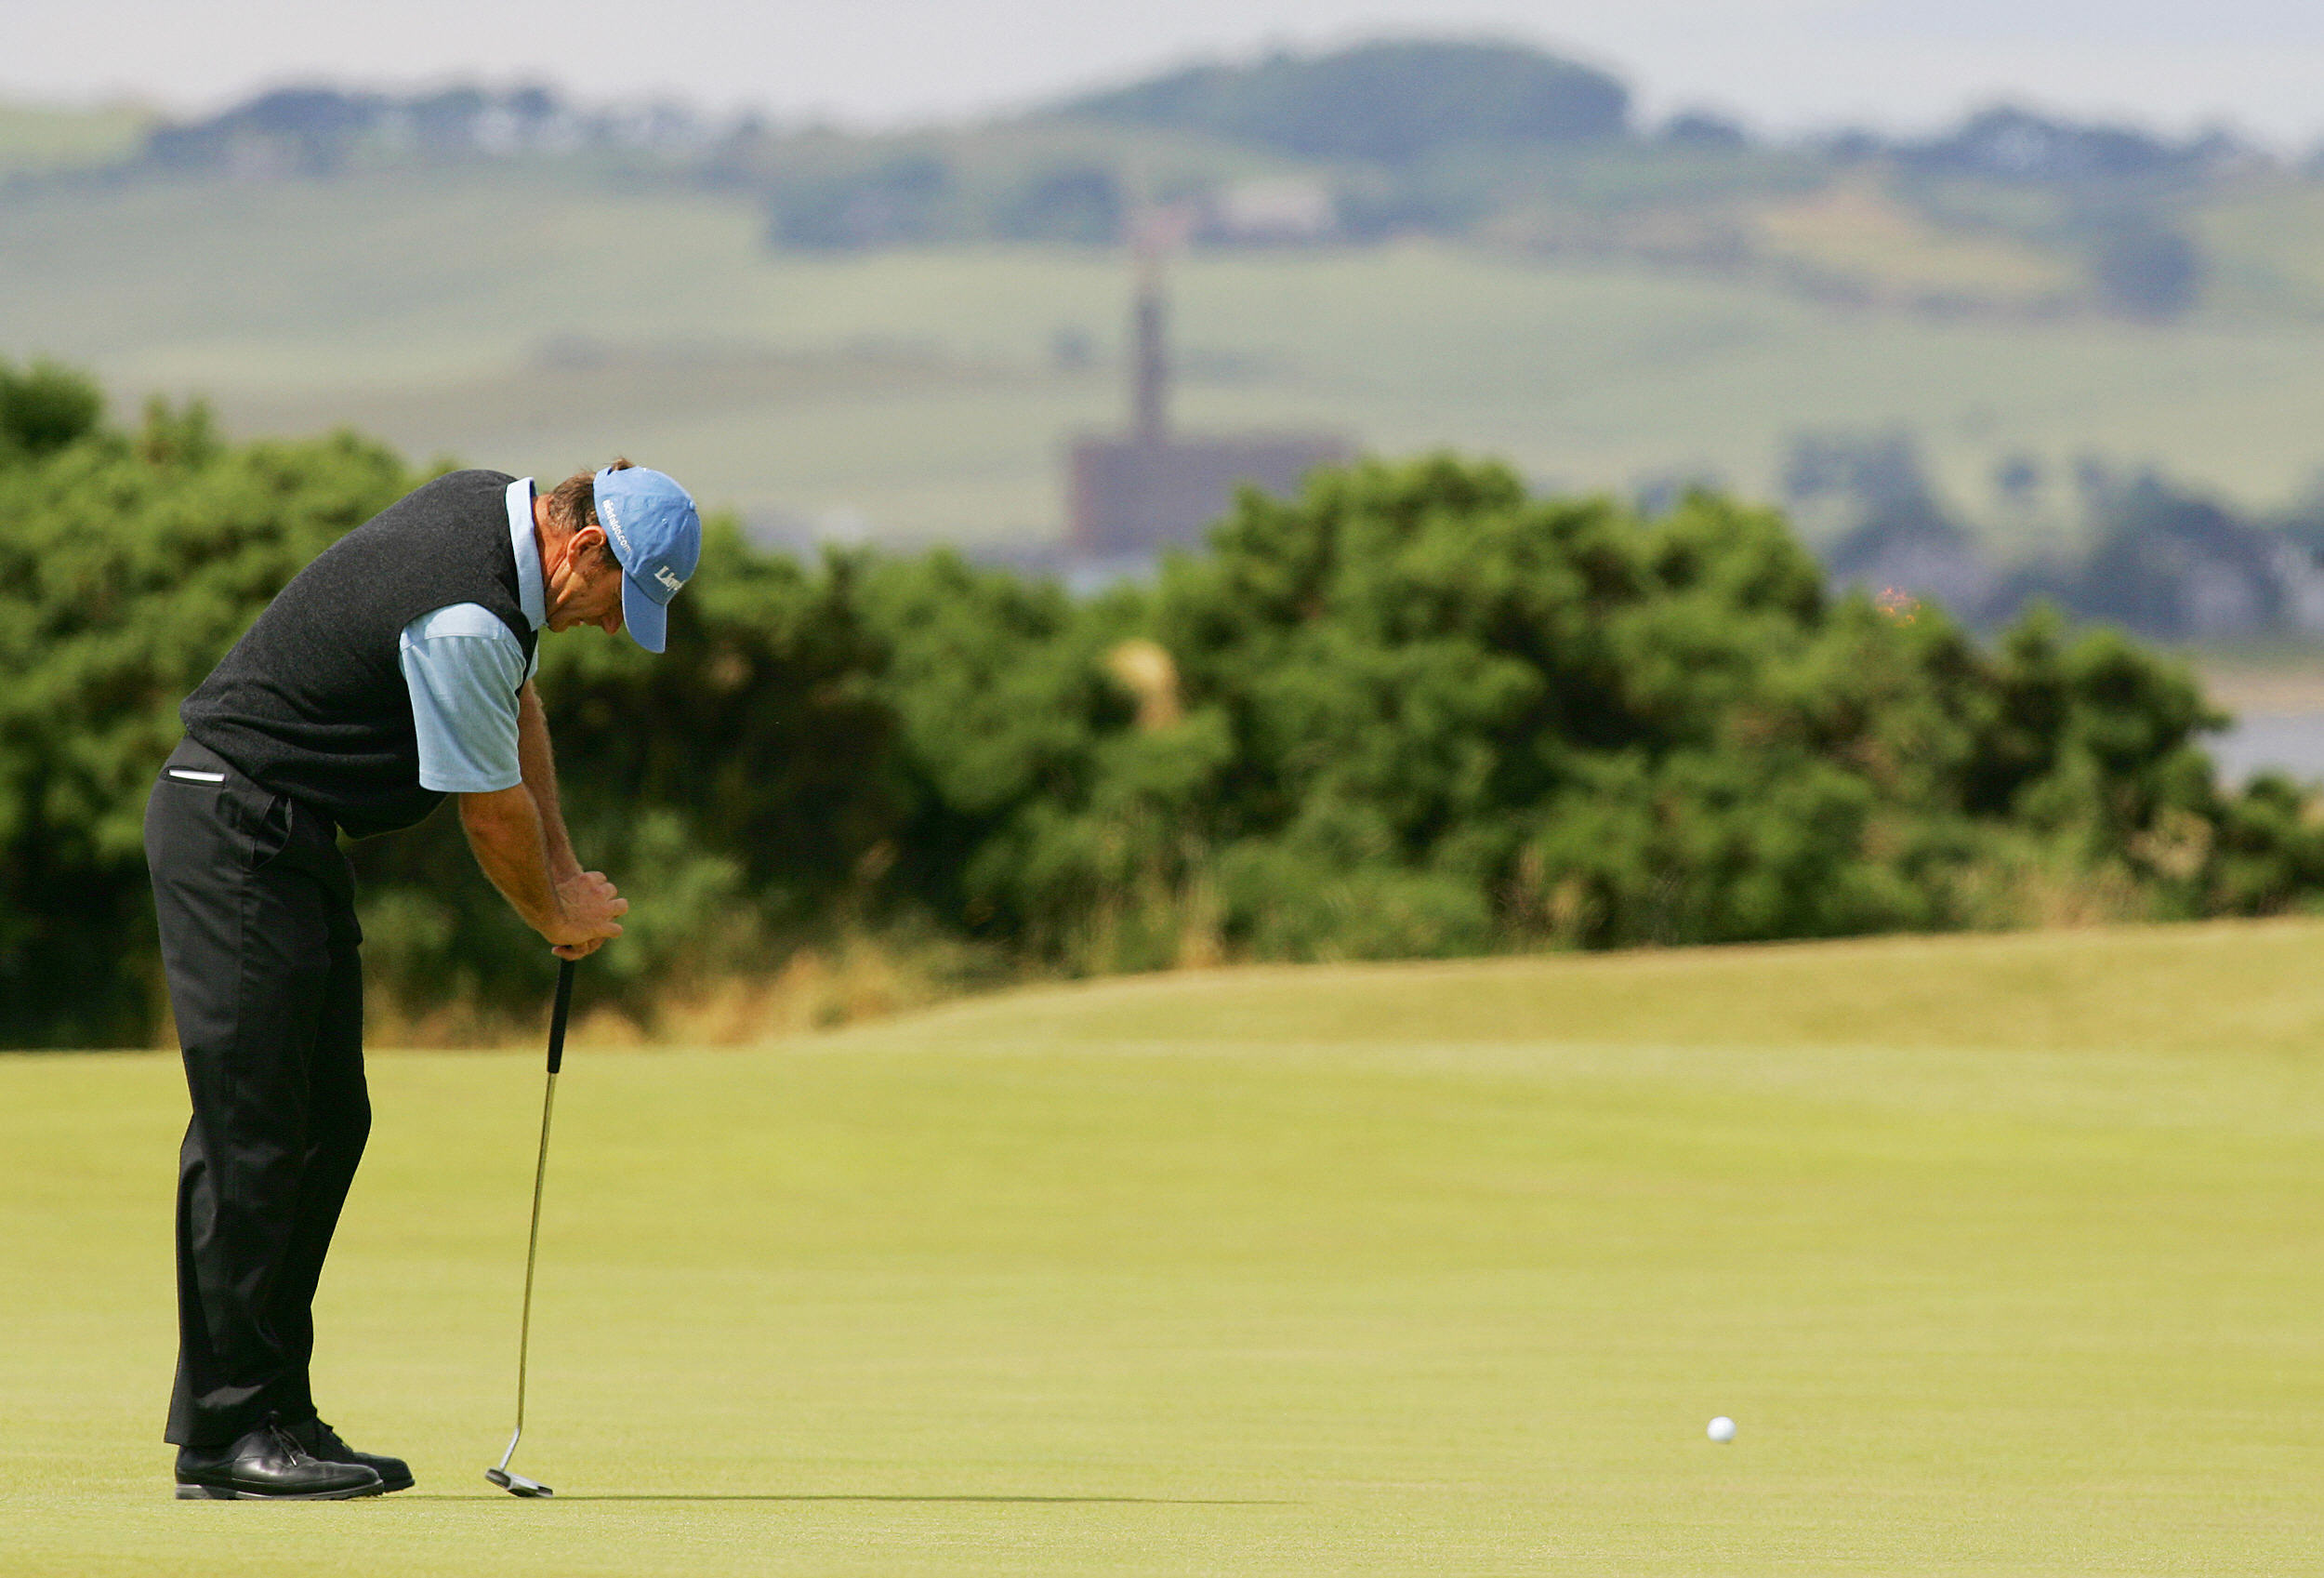 The Englishman last made the cut in the Open in 2005 at St Andrews, where he finished tied 11th (Photo: Getty Images)